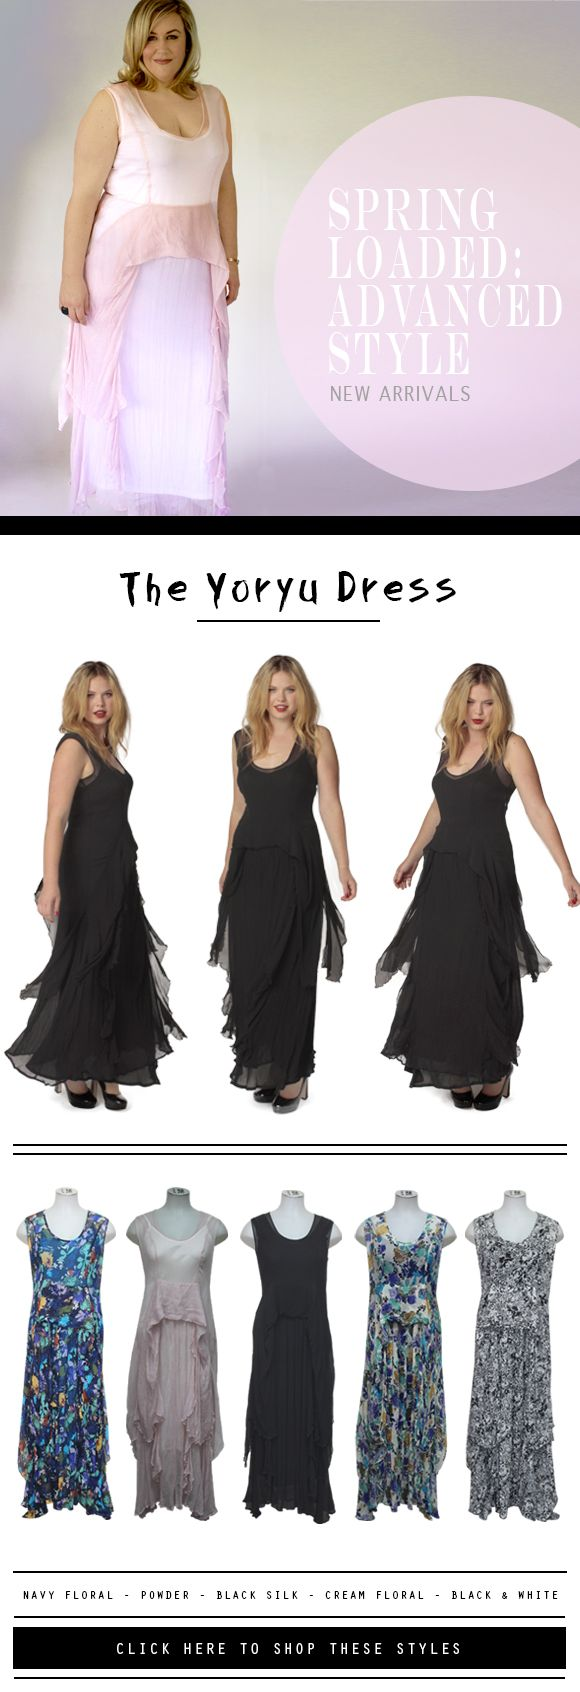 Oh my, love this dress by The Carpenters Daughter! I need the black one, it's gorgeous!